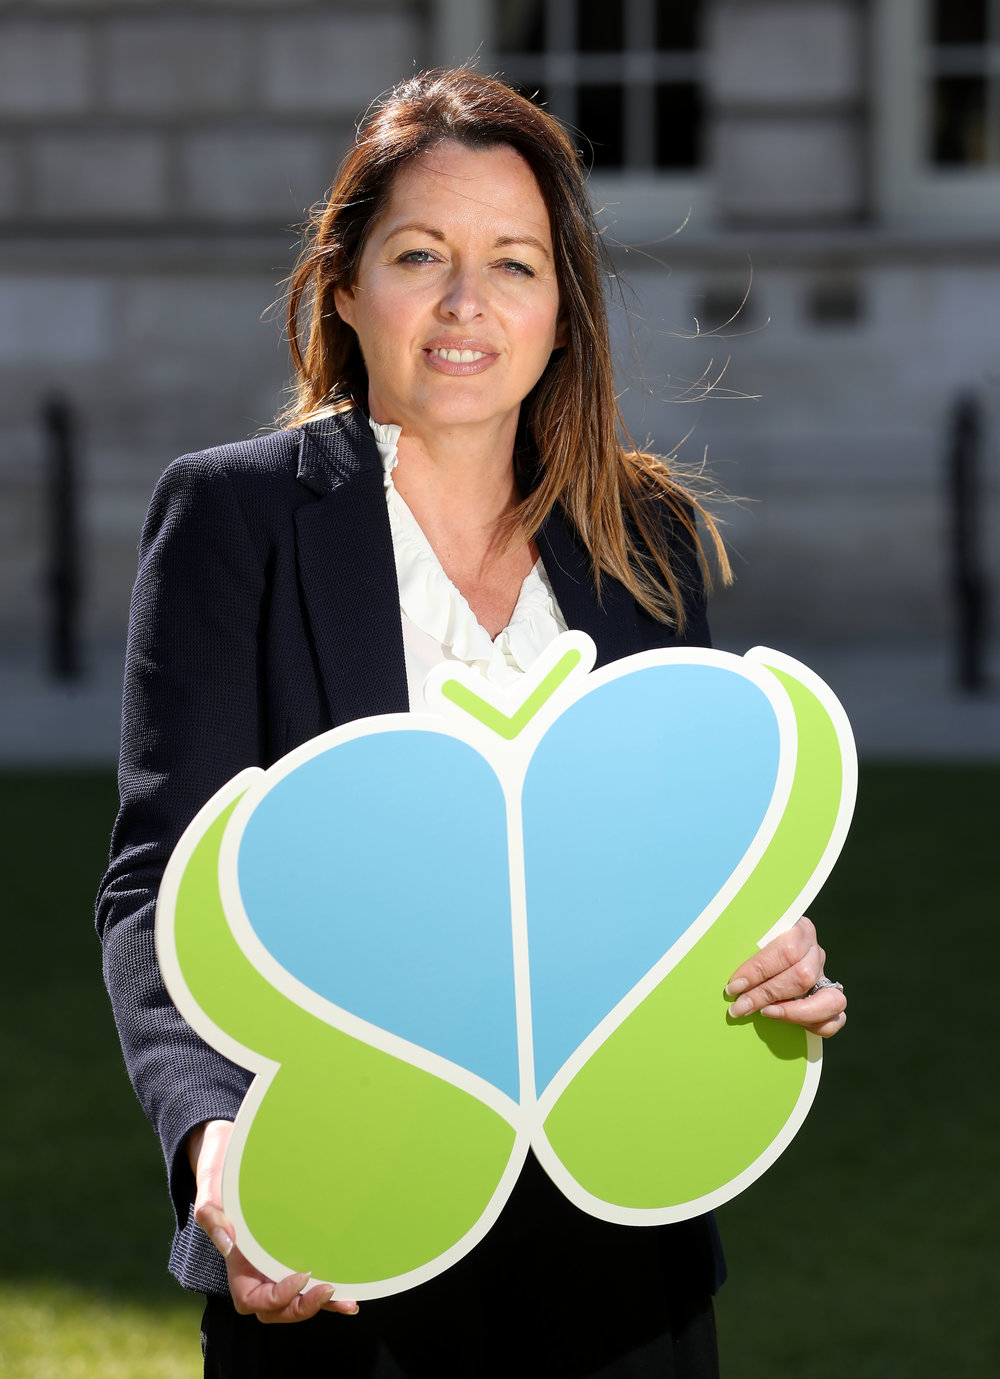 Fiona McCabe, CEO of Brain Injury Matters